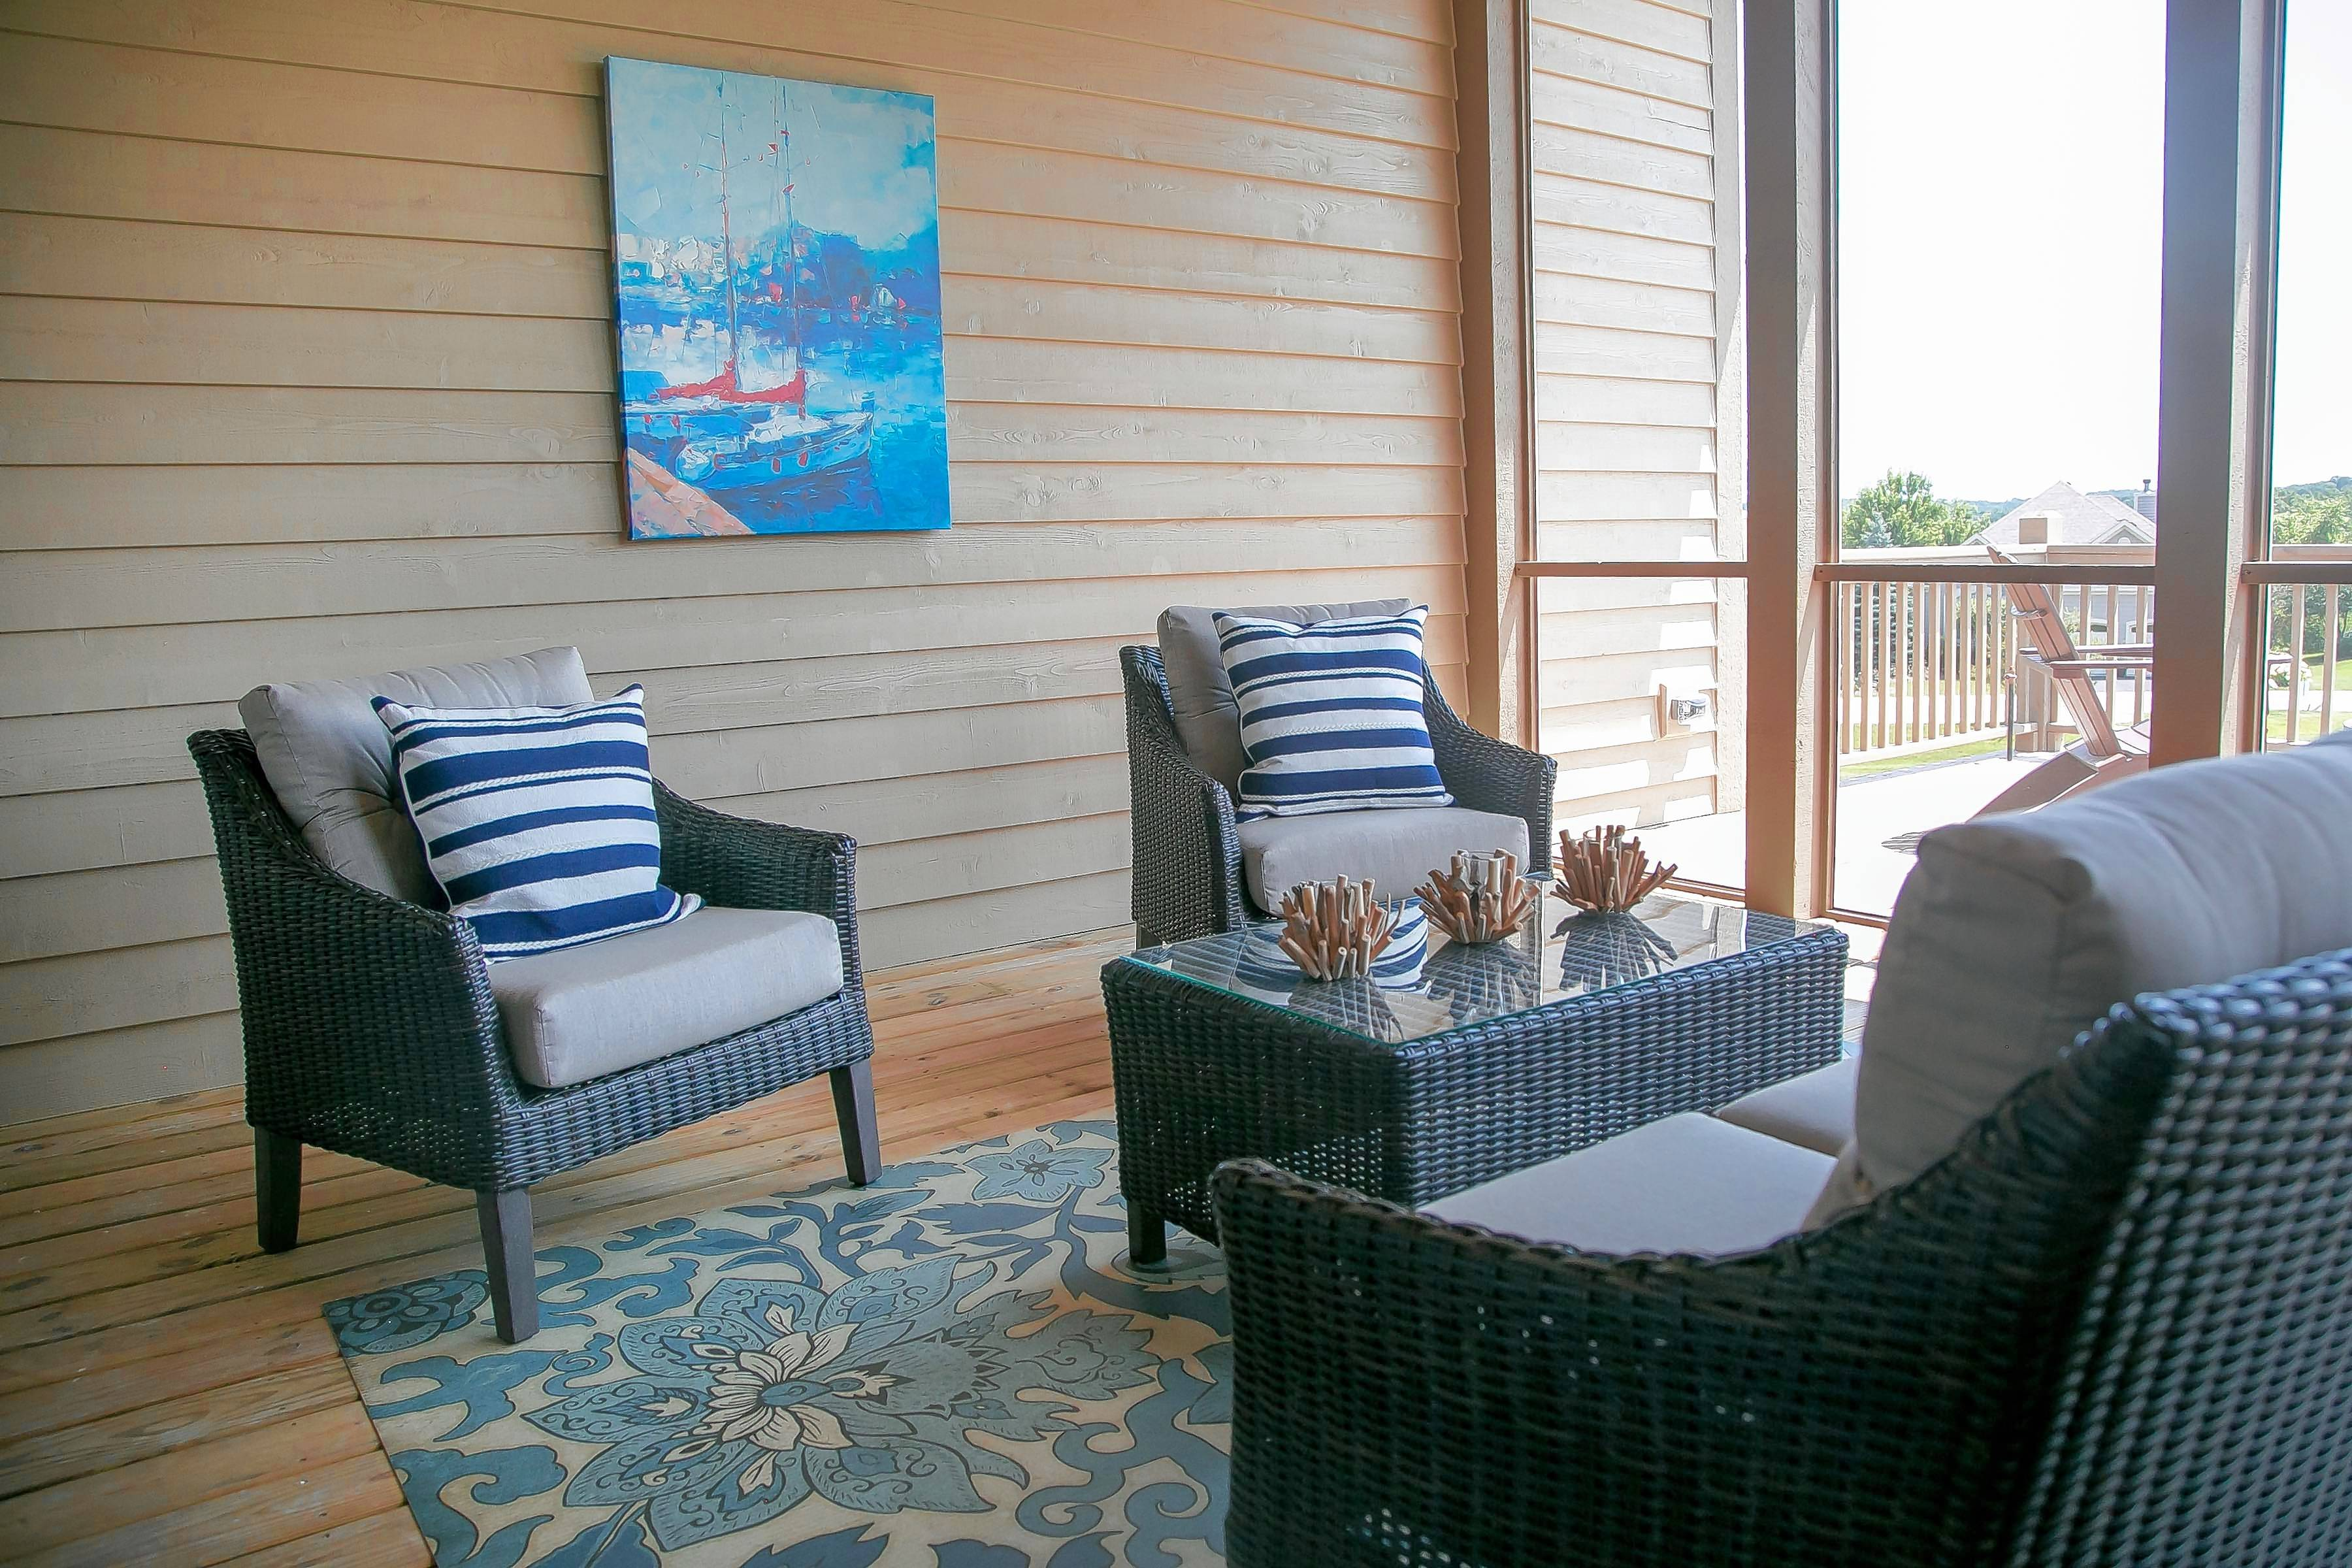 Whether it be a place to sip morning coffee or an evening reading nook, there's many ways to enjoy a screened-in porch at The Lakes of Boulder Ridge in Lake In The Hills.